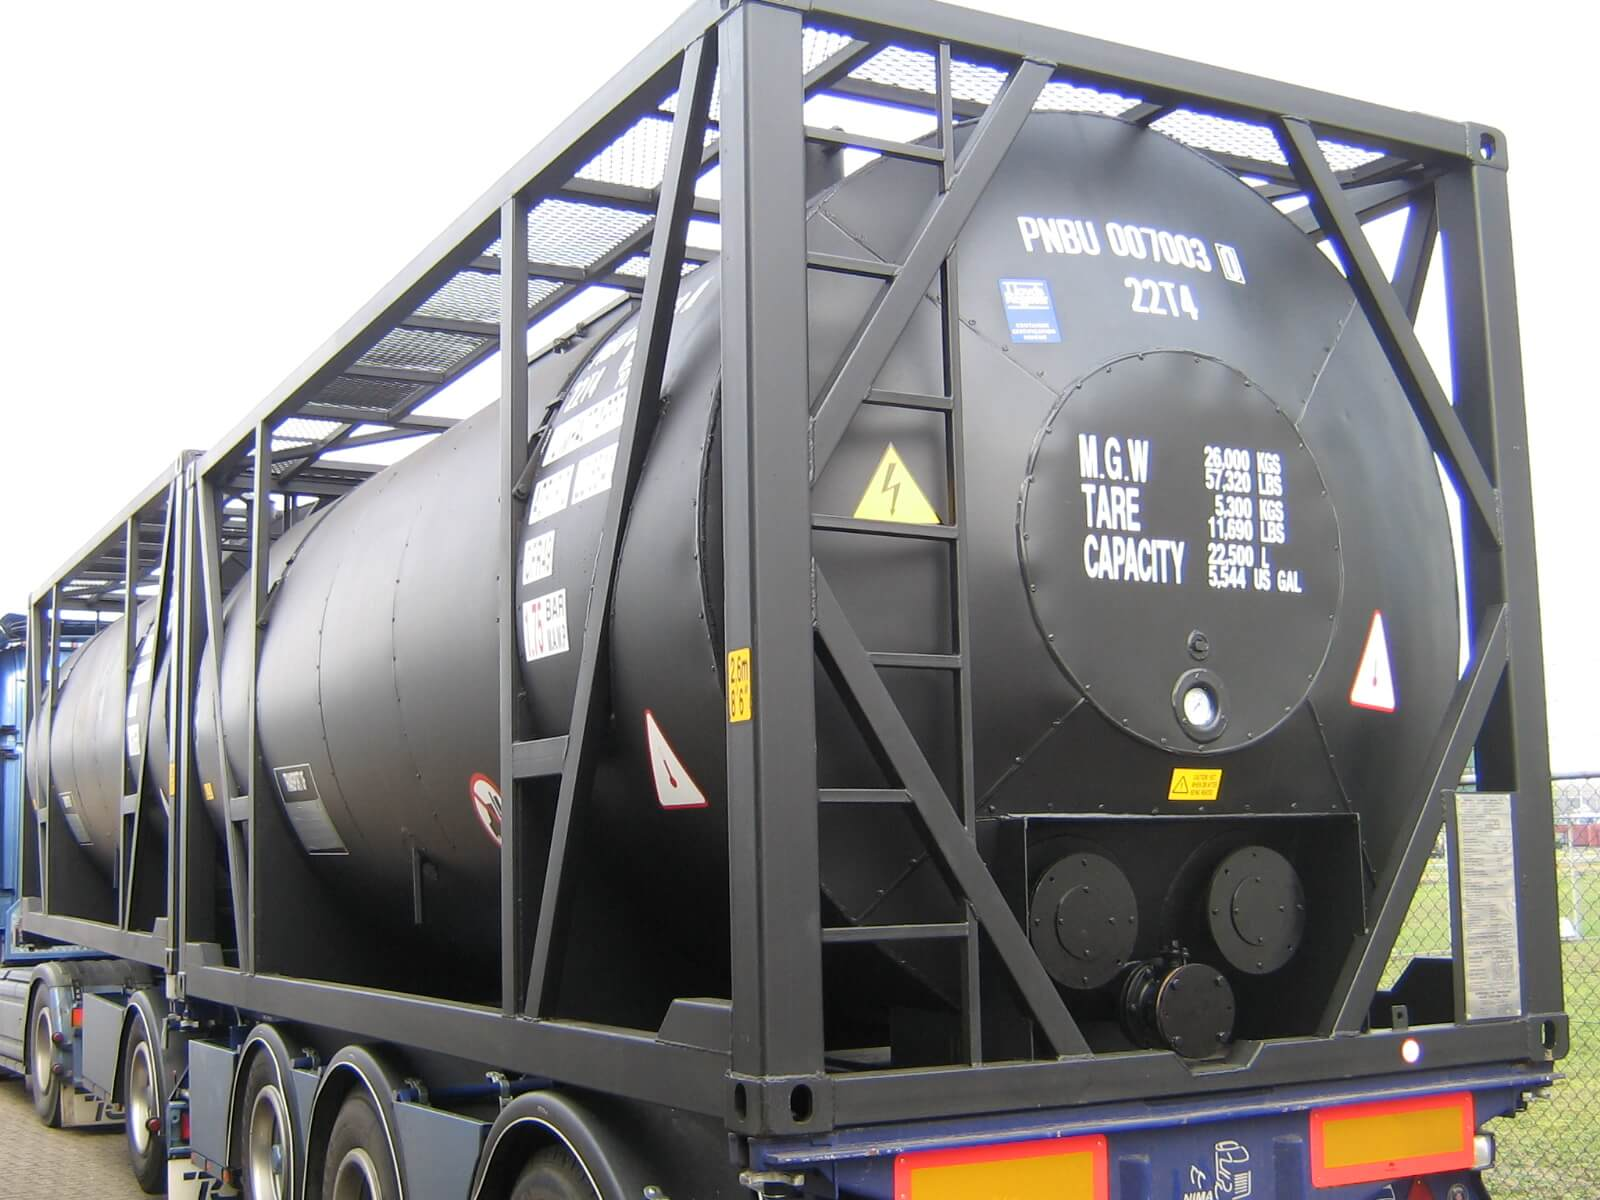 20ft Asphalt Crude oil tank container stainless steel